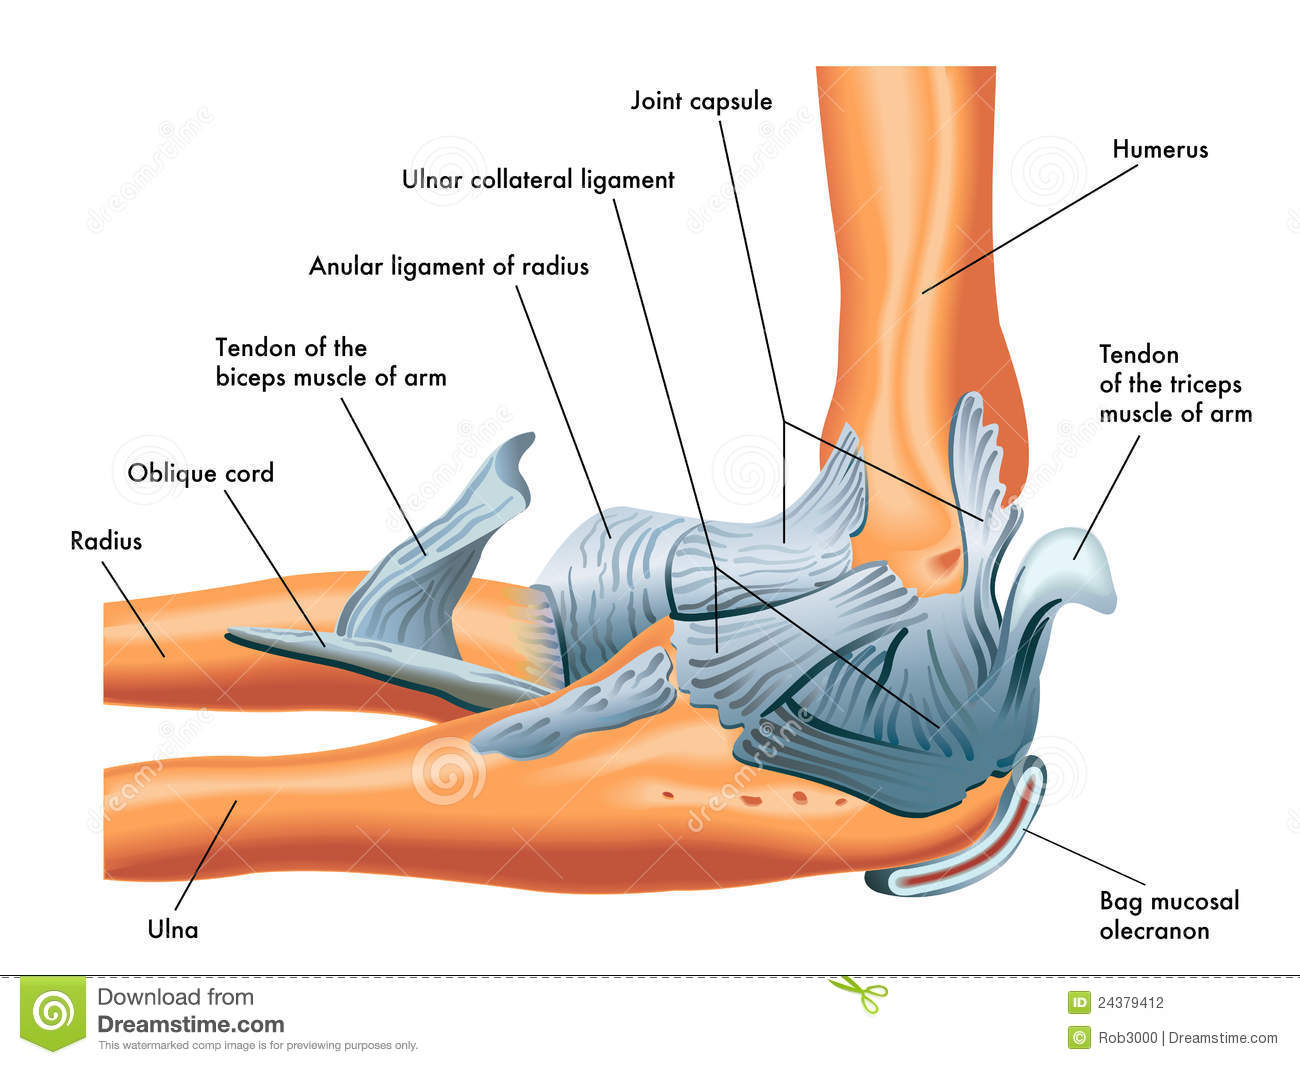 Elbow Anatomy Diagram Ligaments - Wiring Diagram For Light Switch •